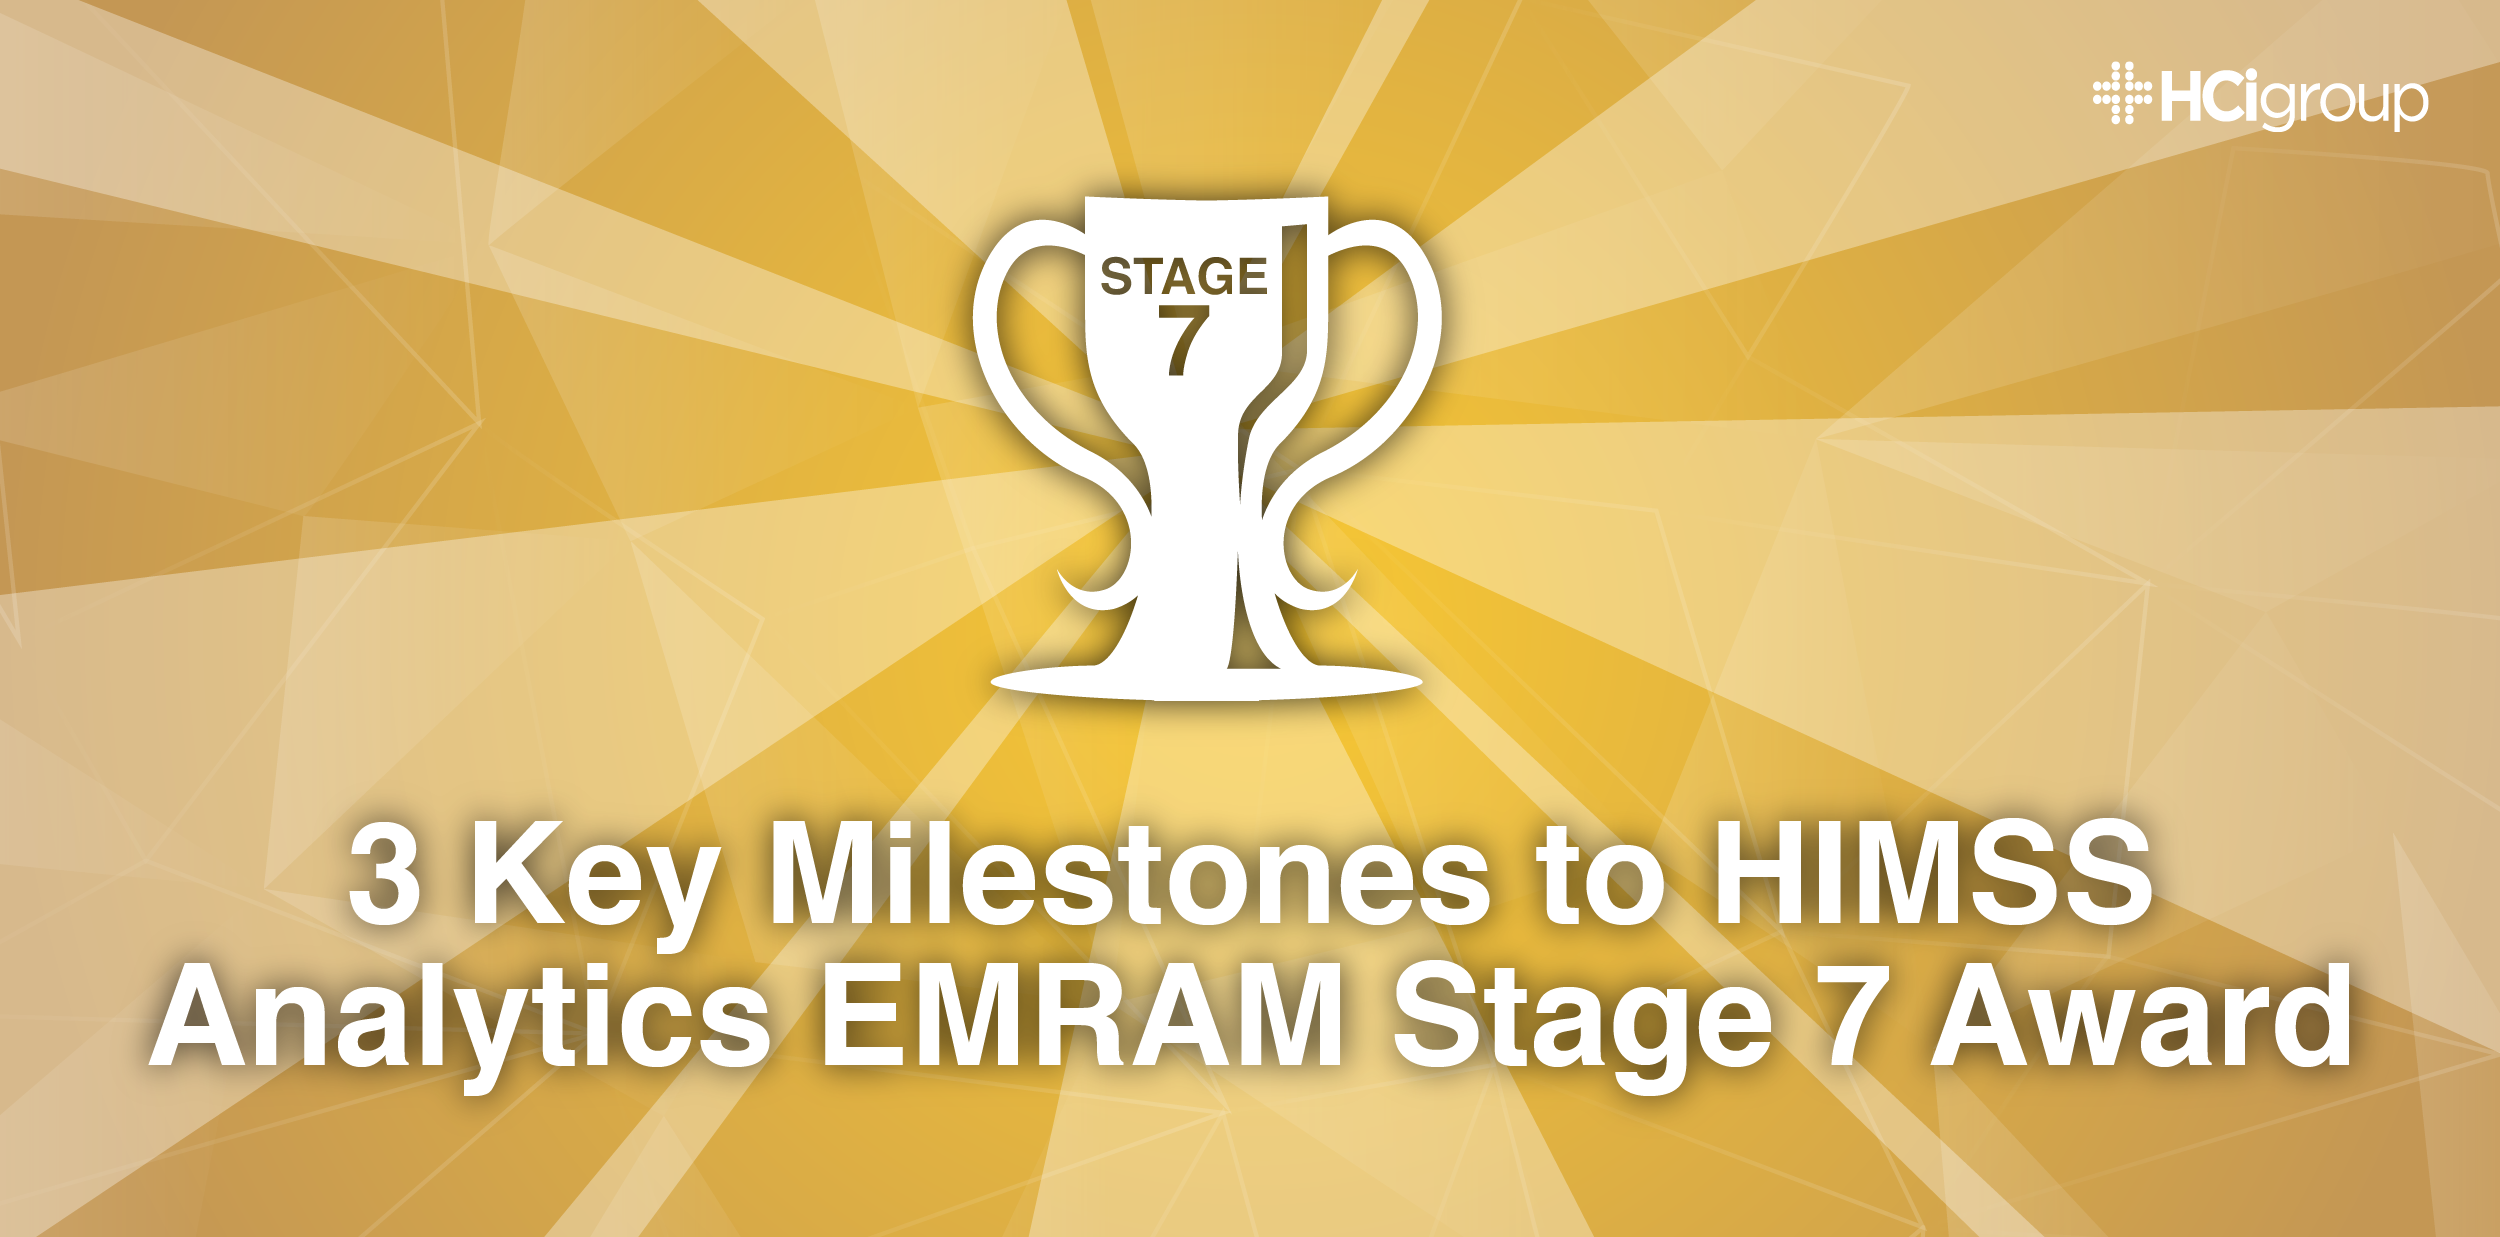 3 Key Milestones to HIMSS Analytics EMRAM Stage 7 Award